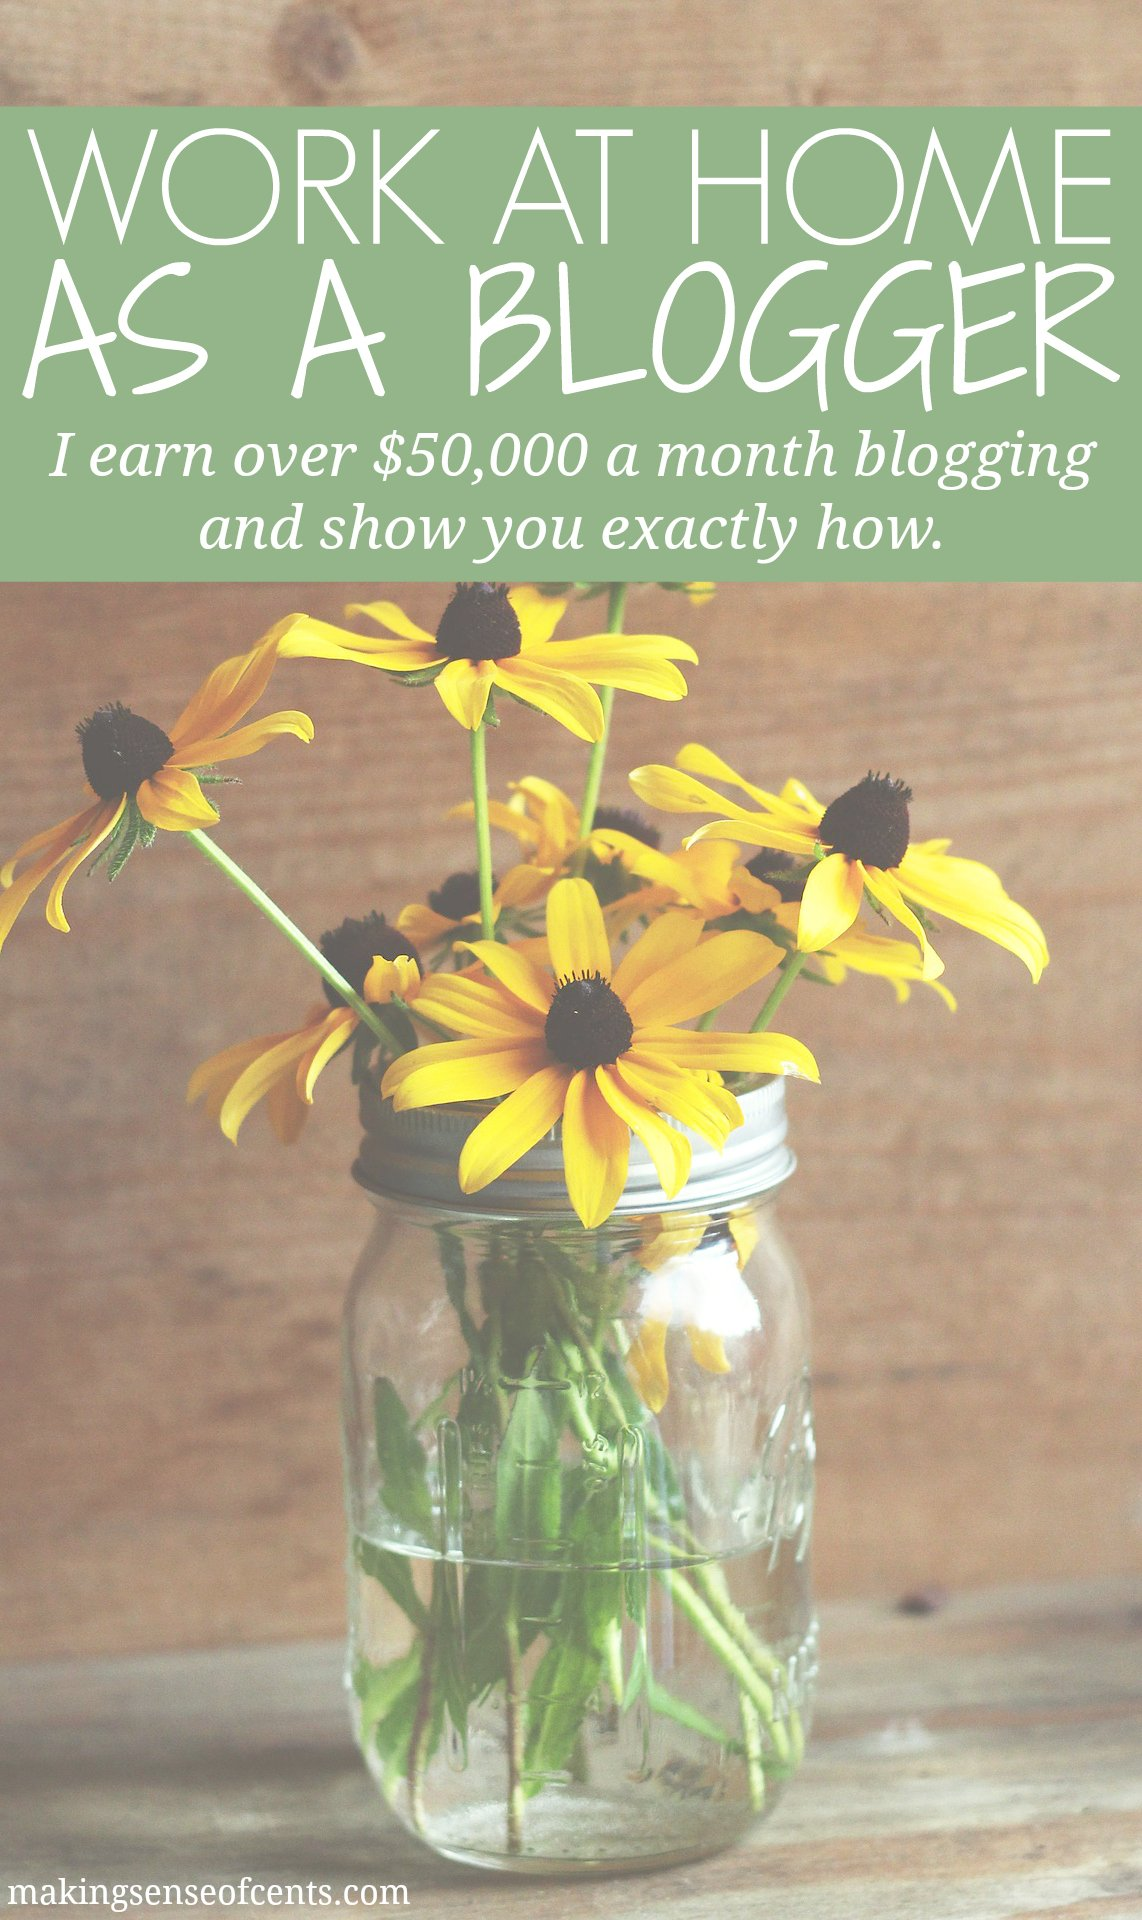 Can New Bloggers Make Money Blogging?